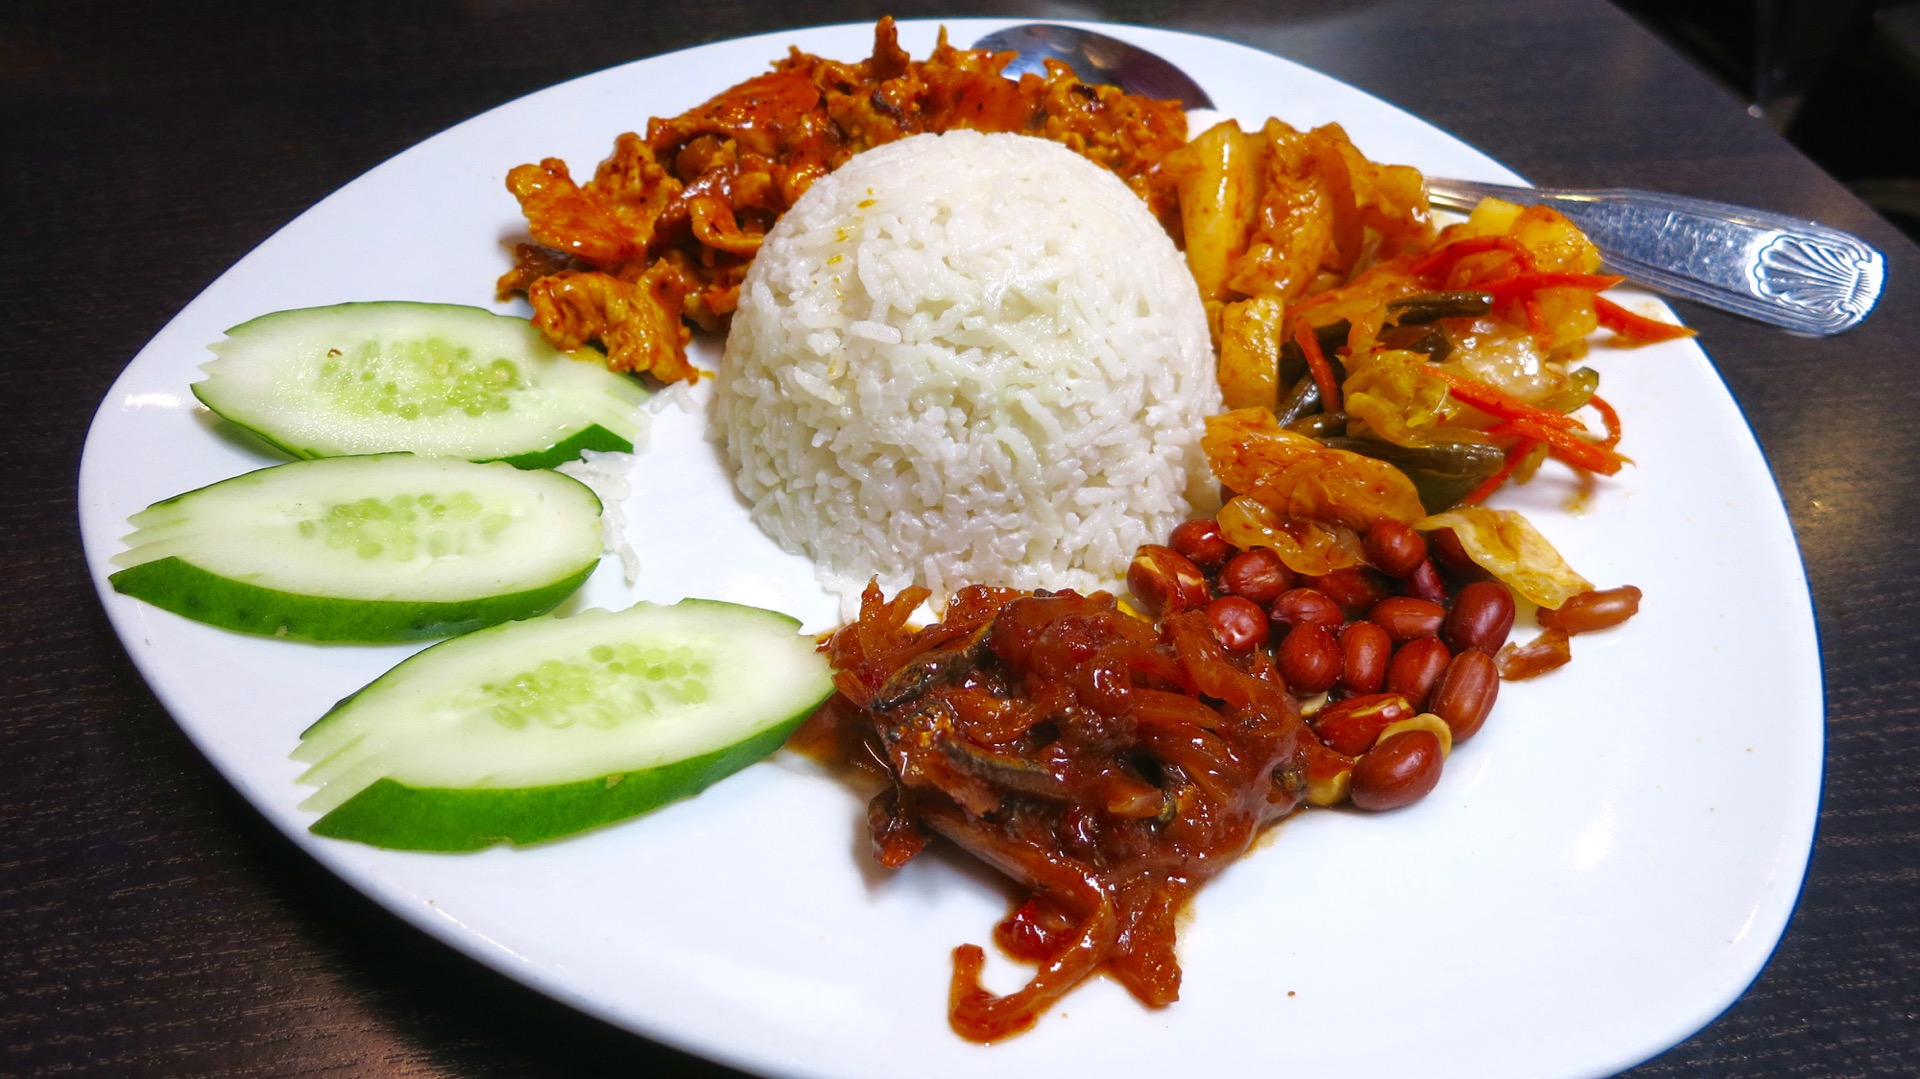 Chilli Padi's nasi lemak is a spicy melange of salty, fishy and savory flavors.